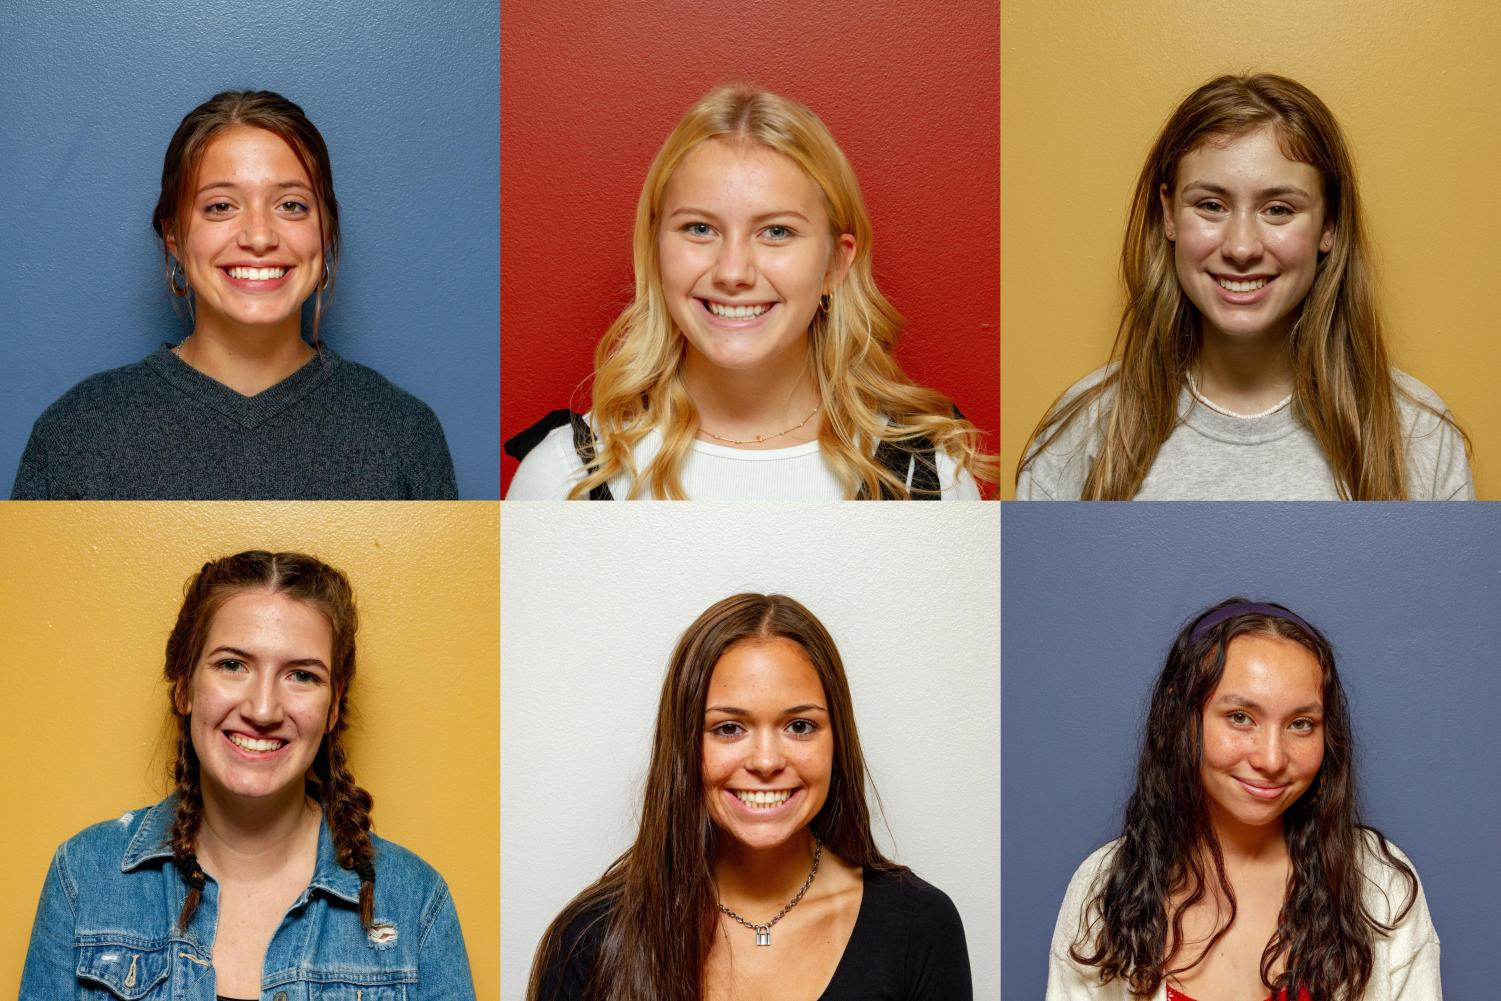 Meet your new members of the editorial board: Maya Smith, Maggie Rasch, Dakota Canzano, Mallory Middendorff, Carlie Weigel, and Maddie Khaw.